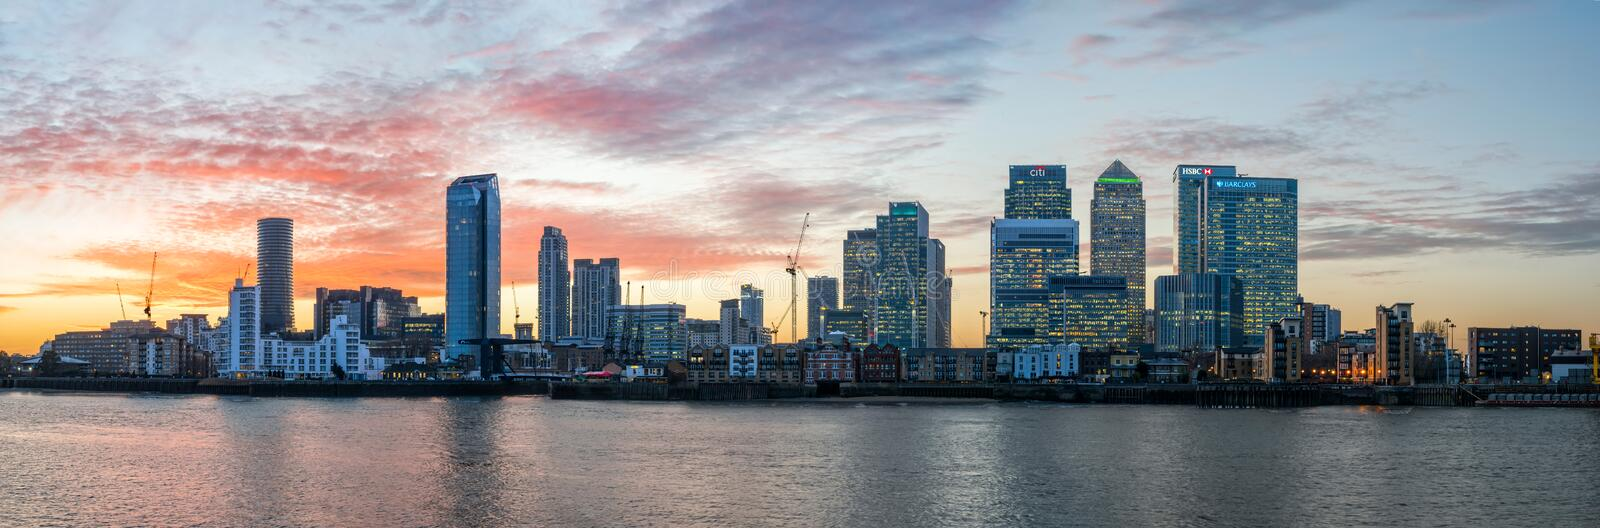 Panorama of Isle of Dogs and Canary Wharf in London at sunset stock photo